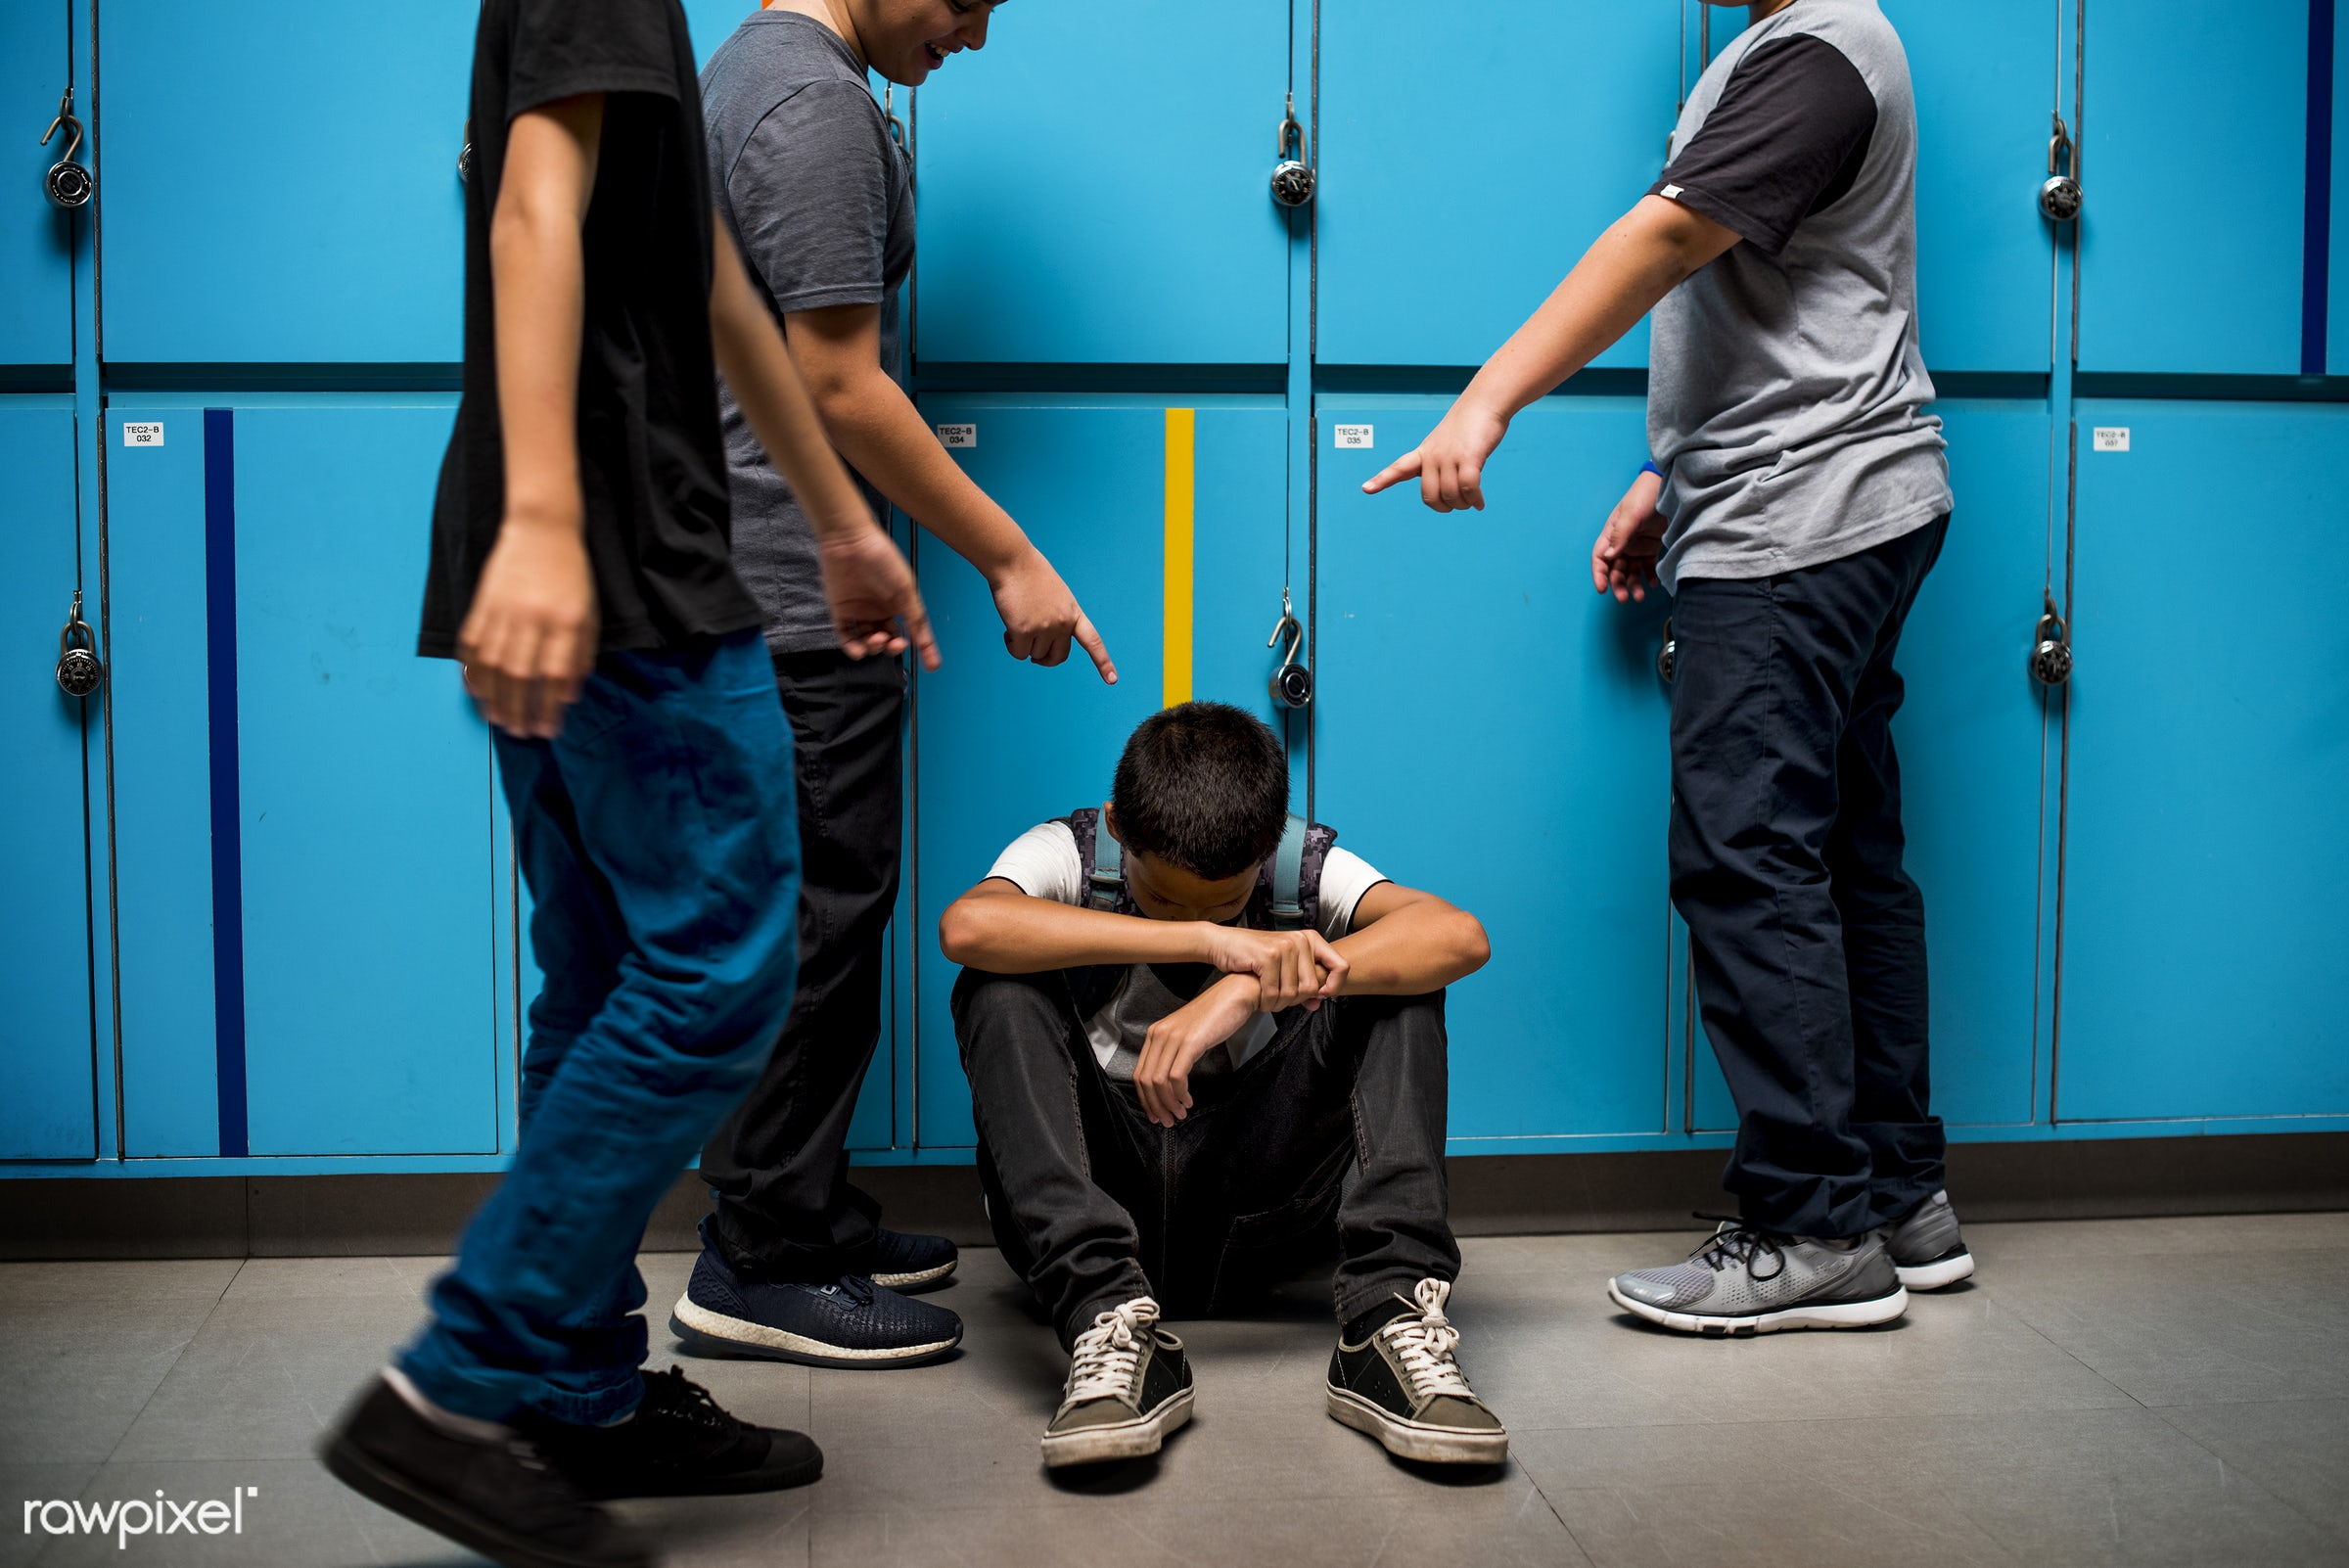 corridor, picked on, asian ethnicity, young adult, teenager, boys, casual, high school, teasing, gesture, locker, harassment...